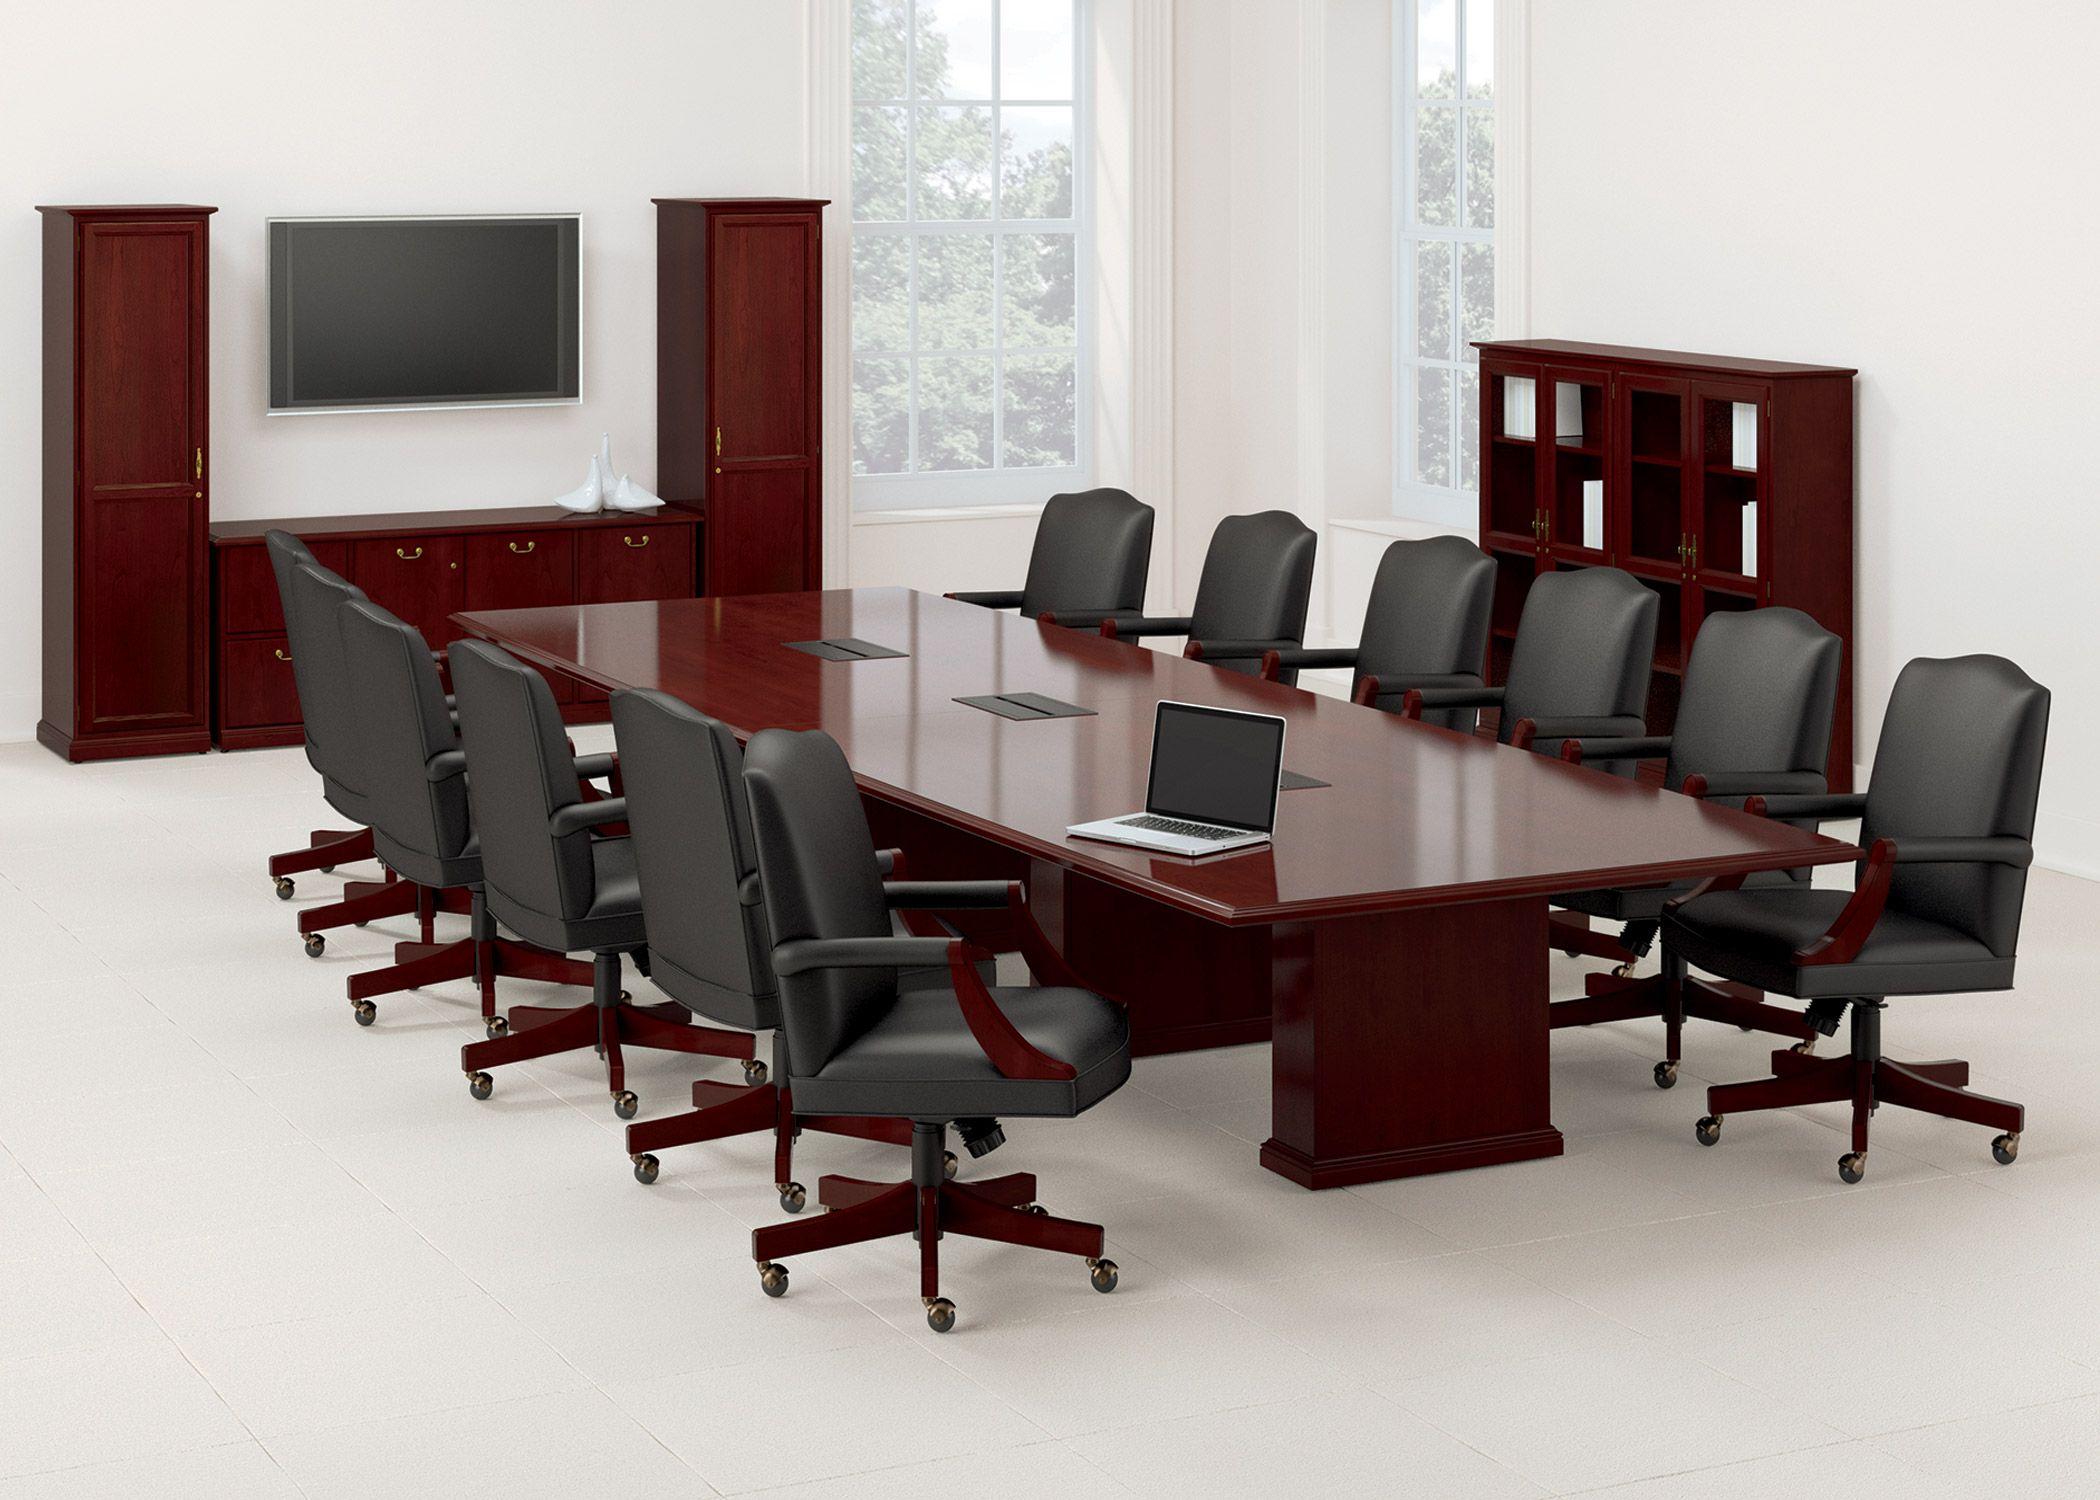 Products National Office Furniture Barrington Table Office Table And Chairs Home Office Furniture Desk Conference Room Tables